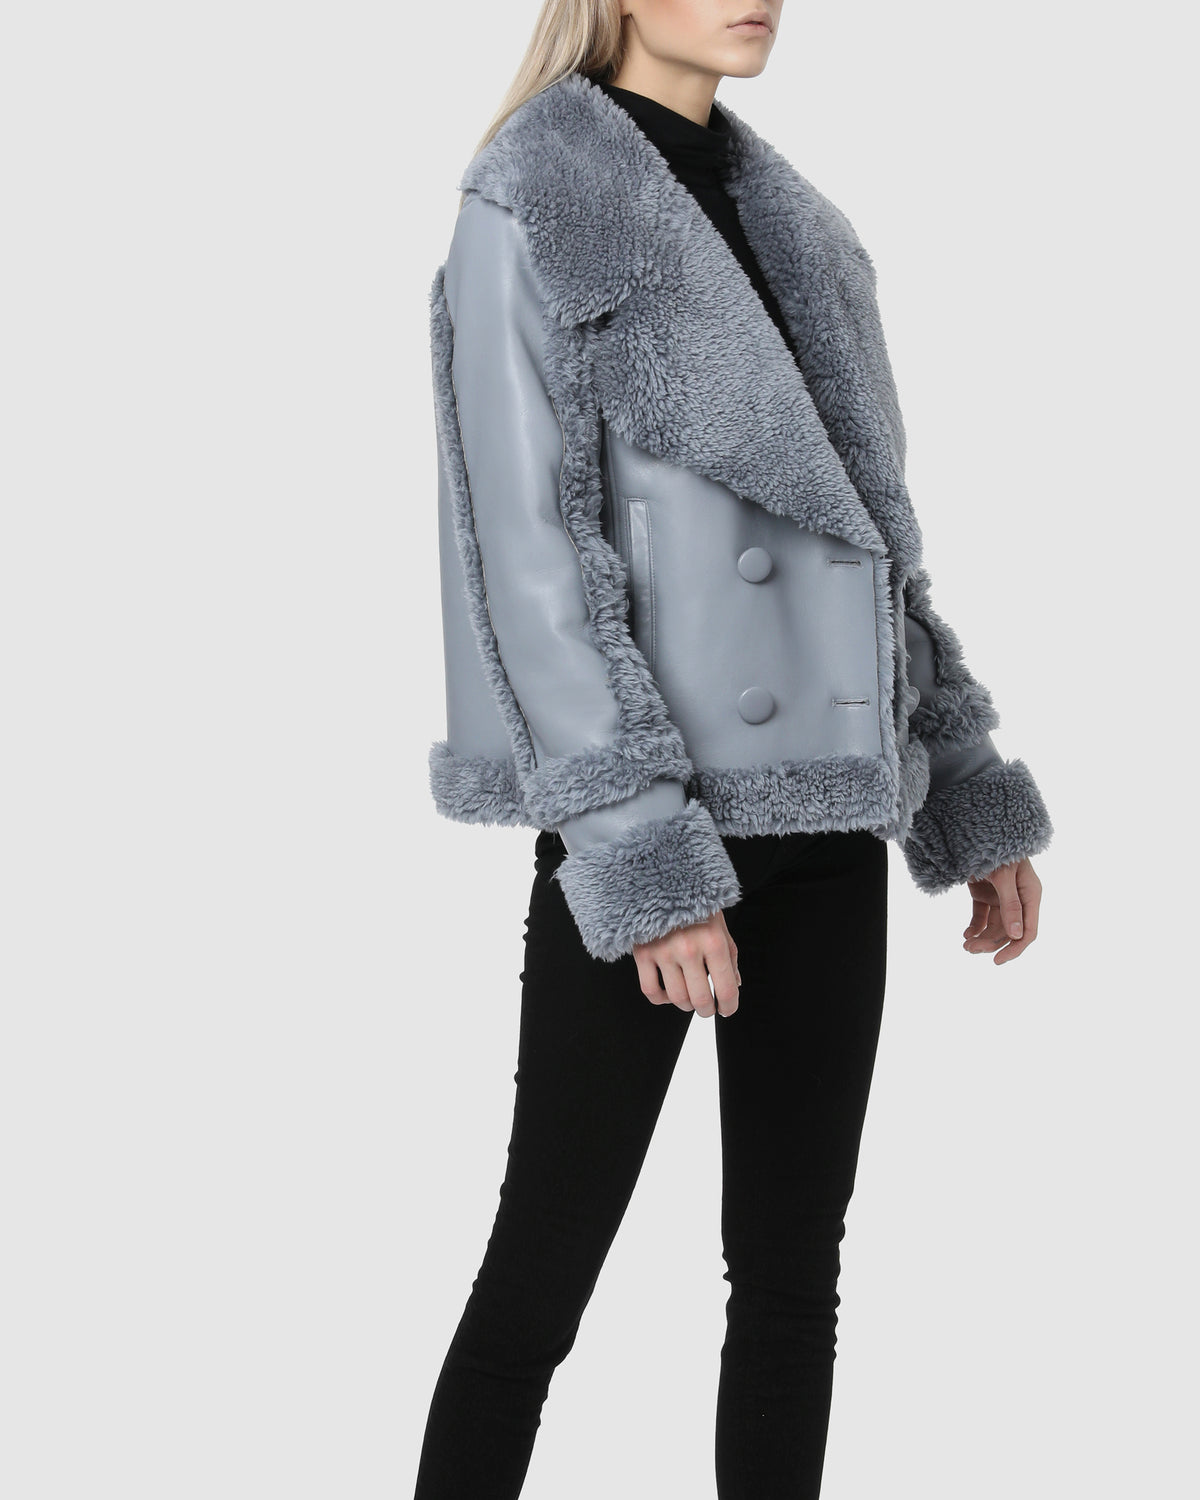 FAUX SHEARLING – Zen Blue